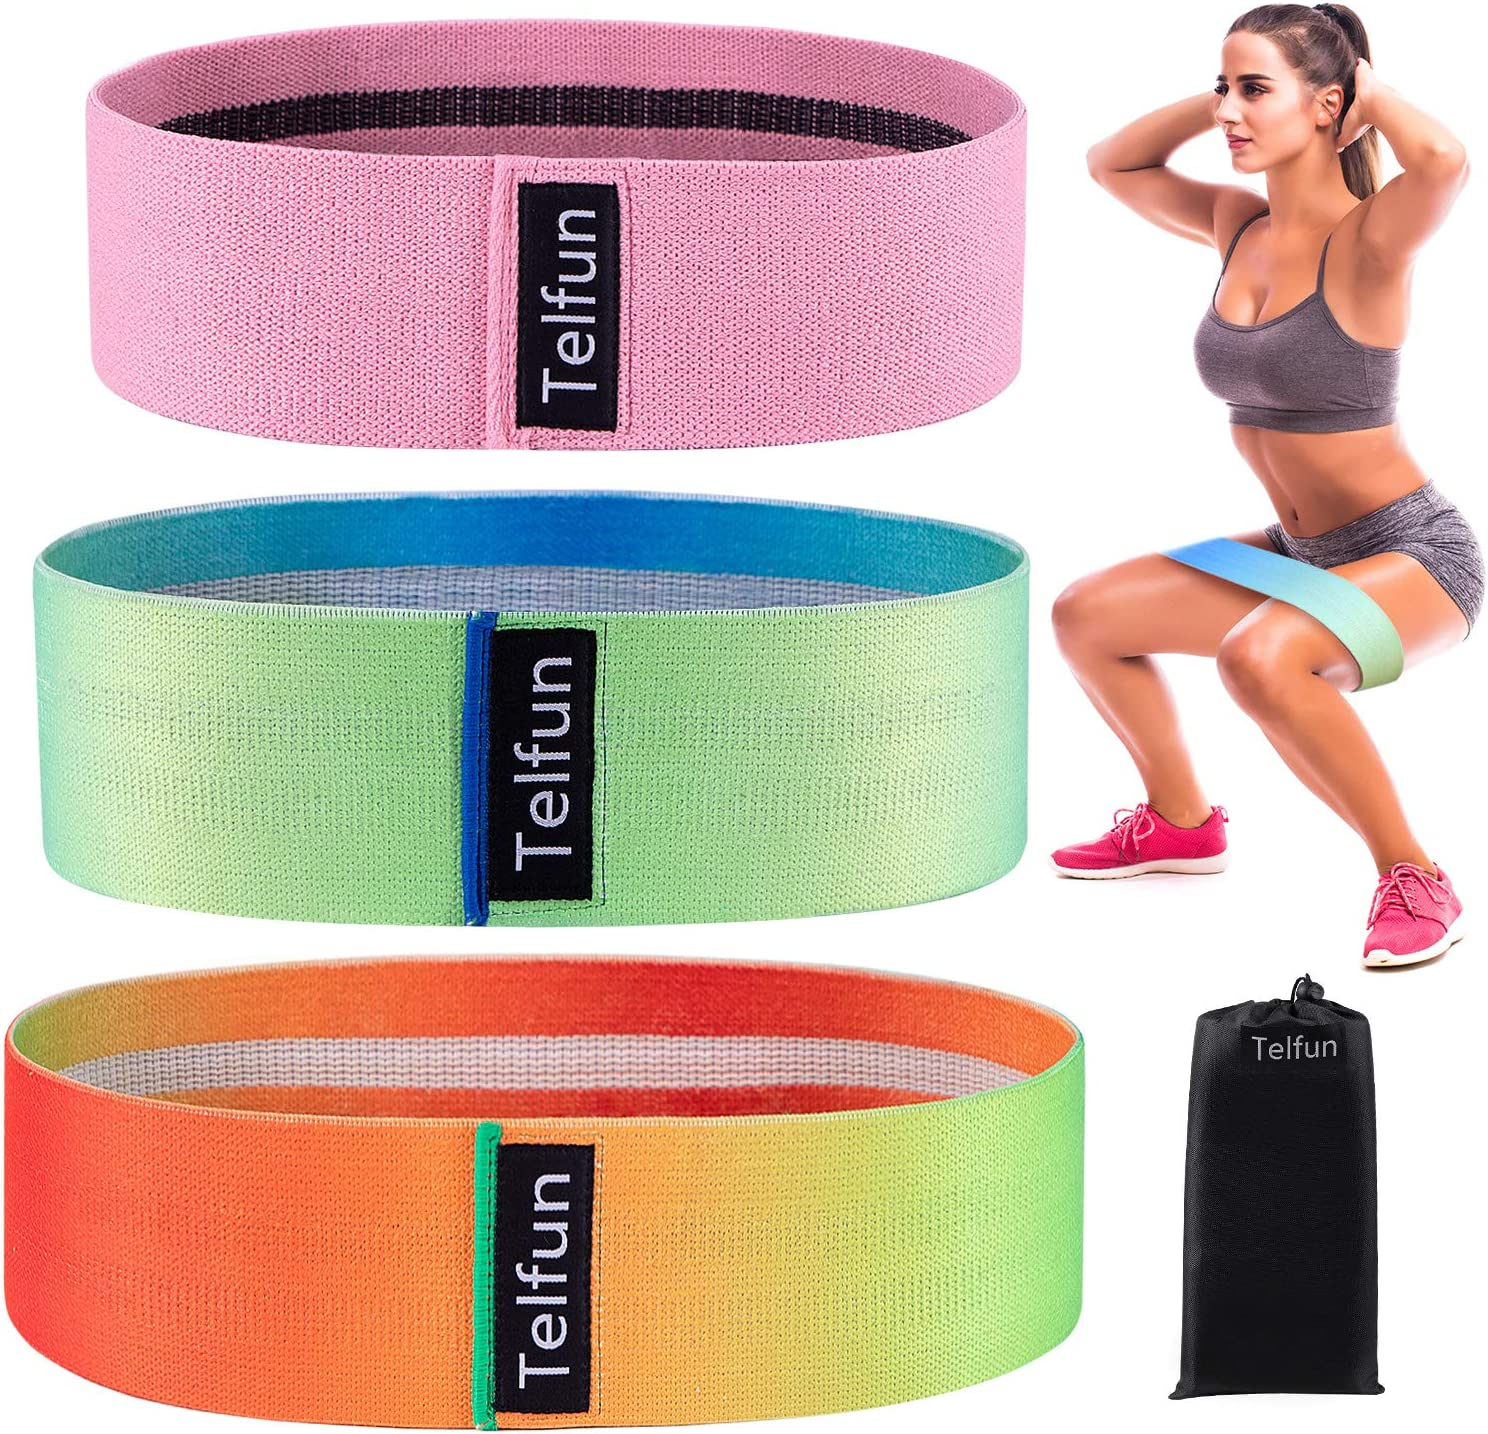 Loop Exercise Bands Booty Workout 3 Fabric Resistance Bands for Legs and Butt